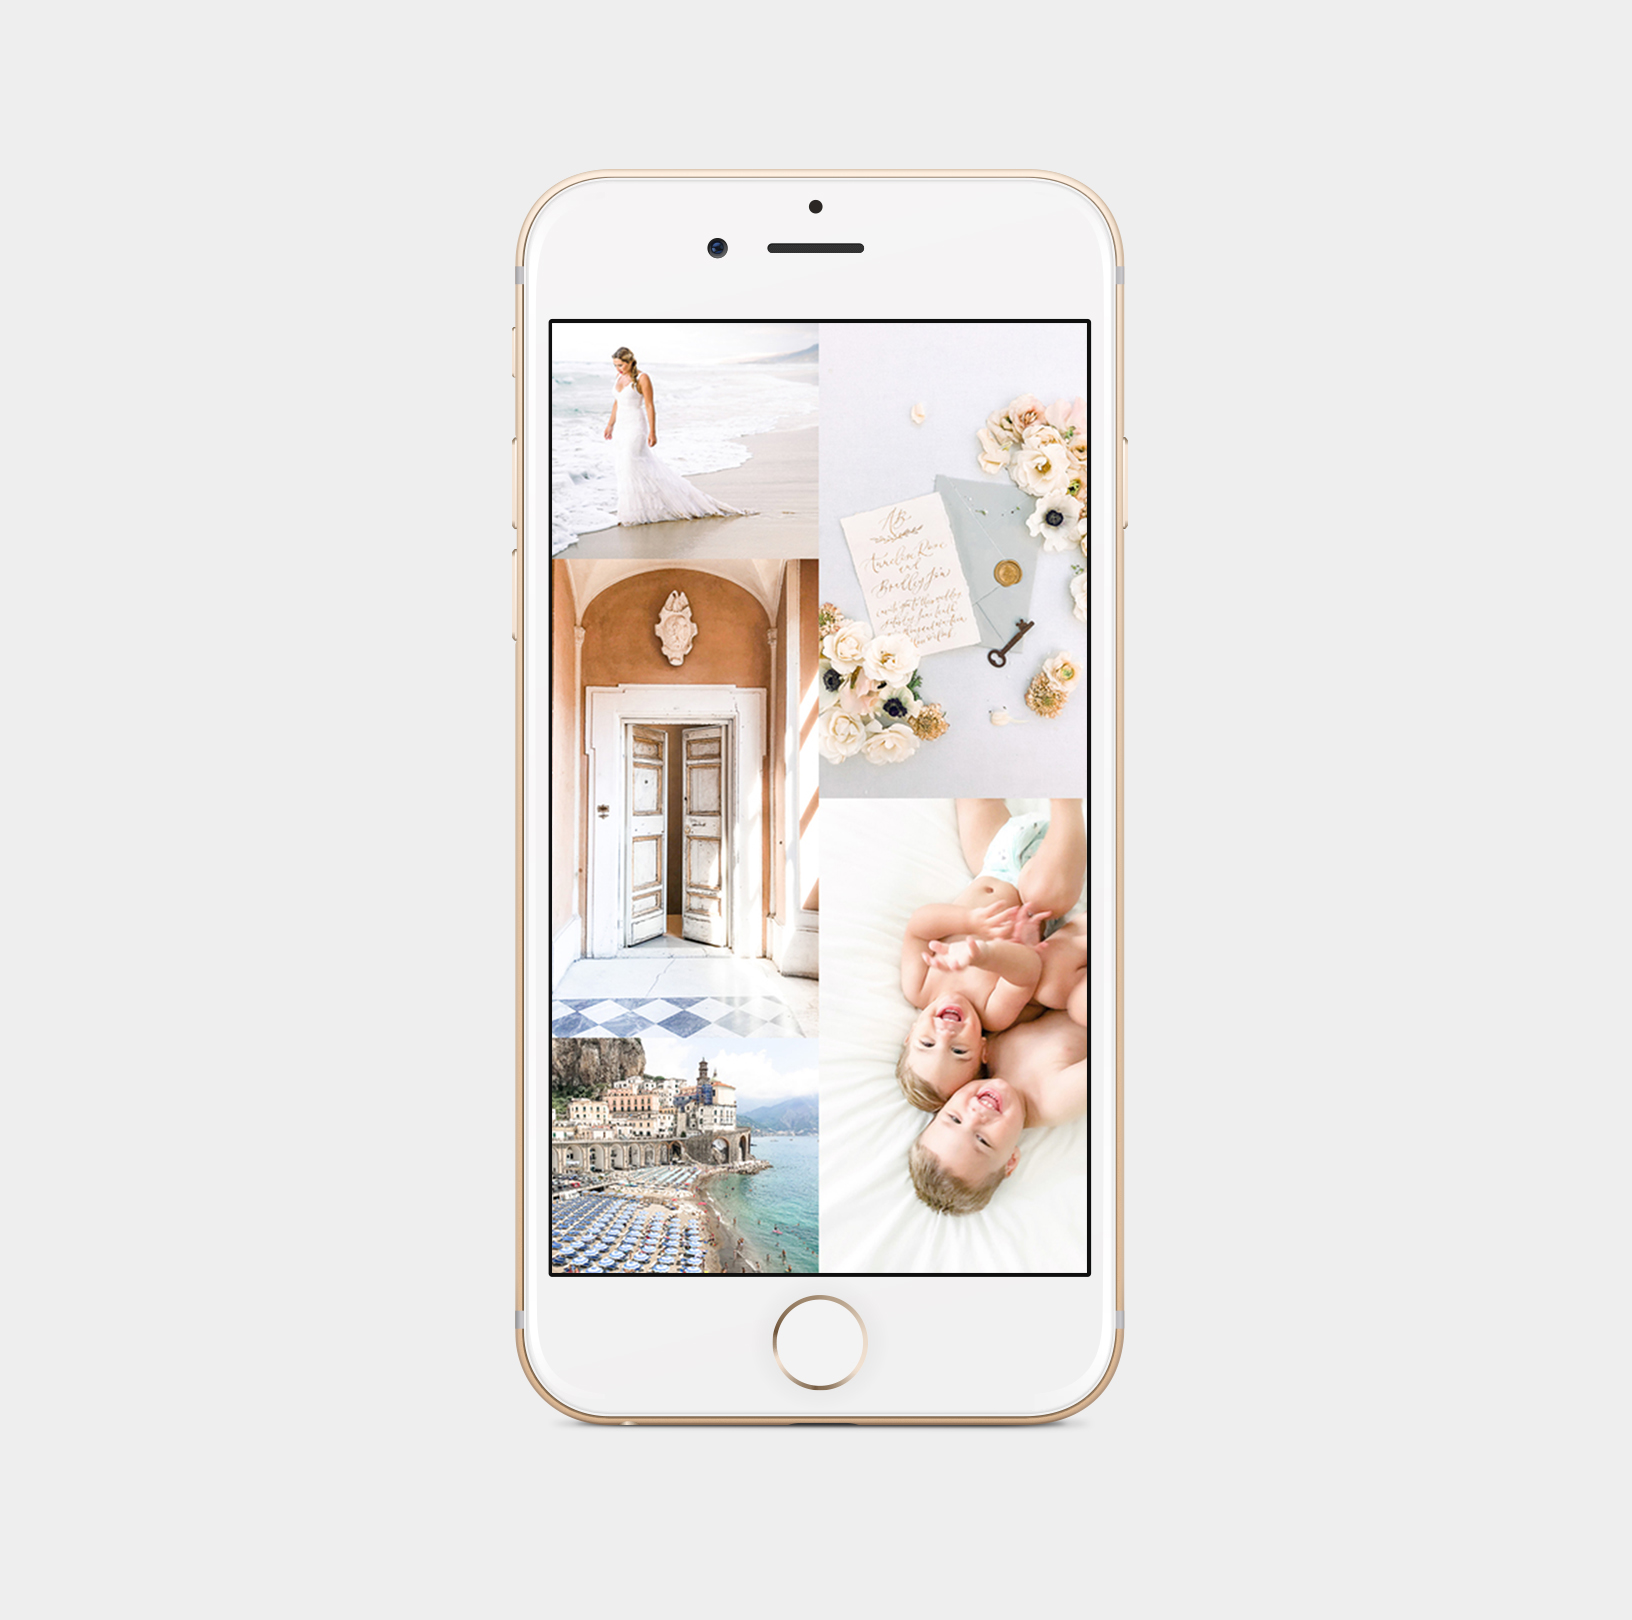 Mobile— - Presets For Editing On The Go